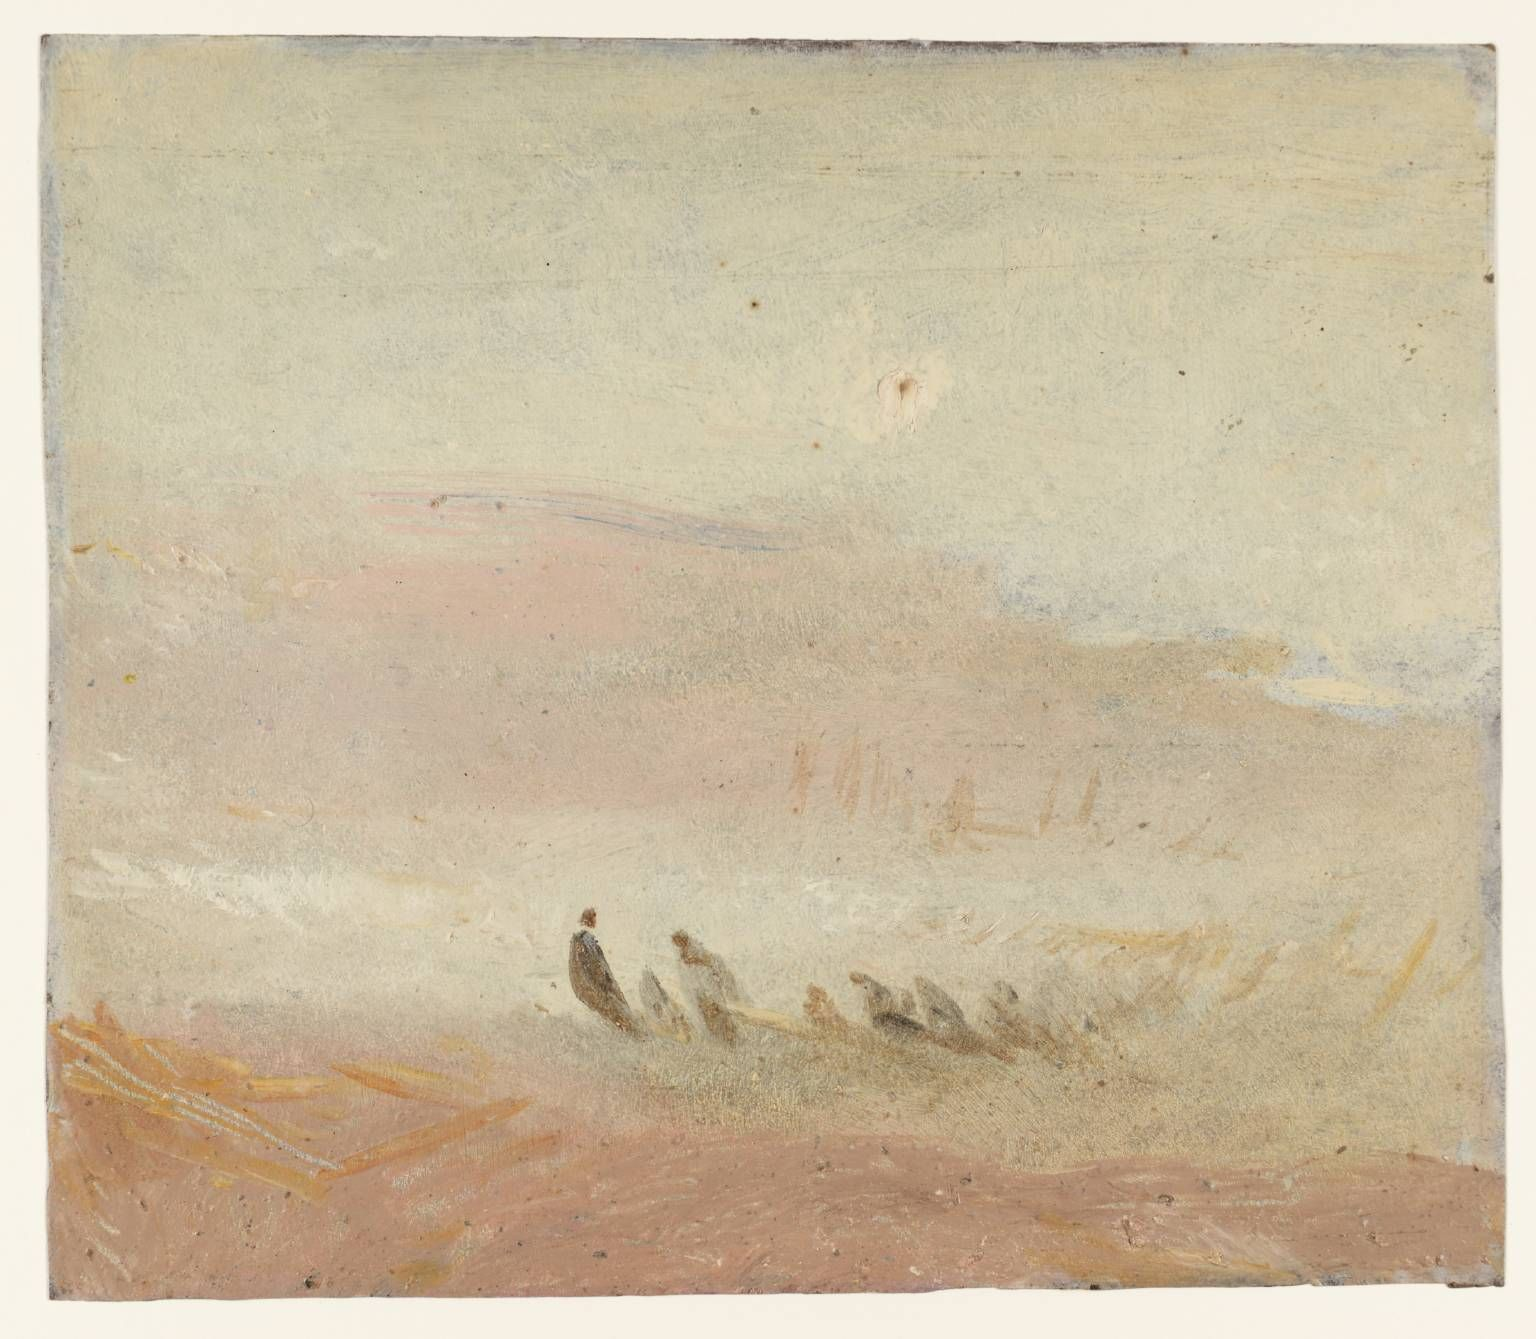 Joseph Mallord William Turner, 'Figures on a Beach' c.1840–5